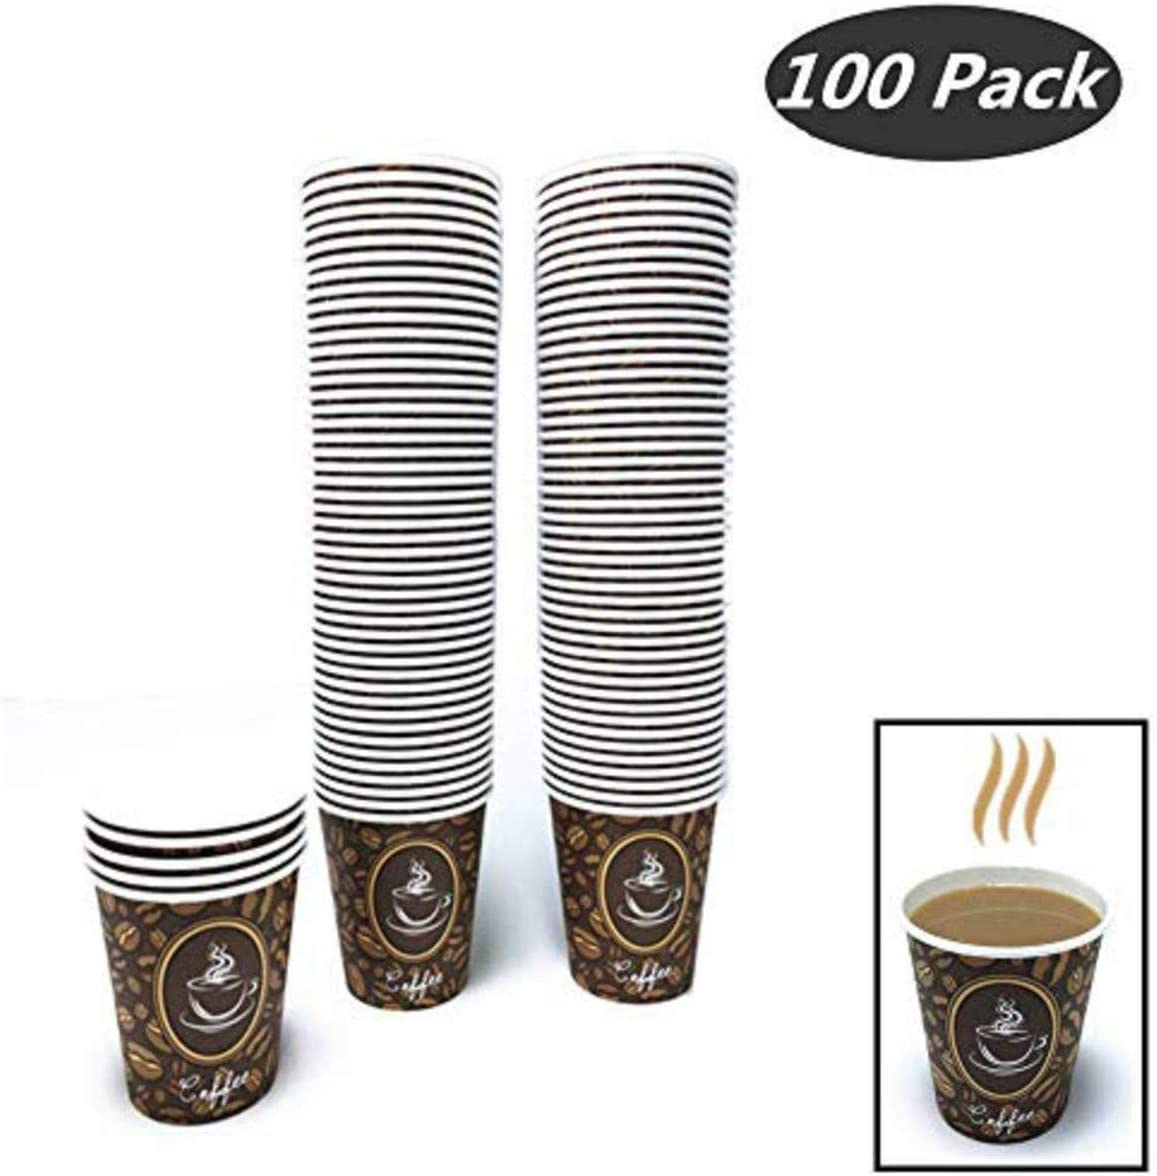 100 Pack Quality Disposable Paper Hot Coffee Cups, Perfect For Hot Drinks Tea & Coffee, Coffee Shops And Bars (8 oz, Coffee Bean Design Hot Cup)